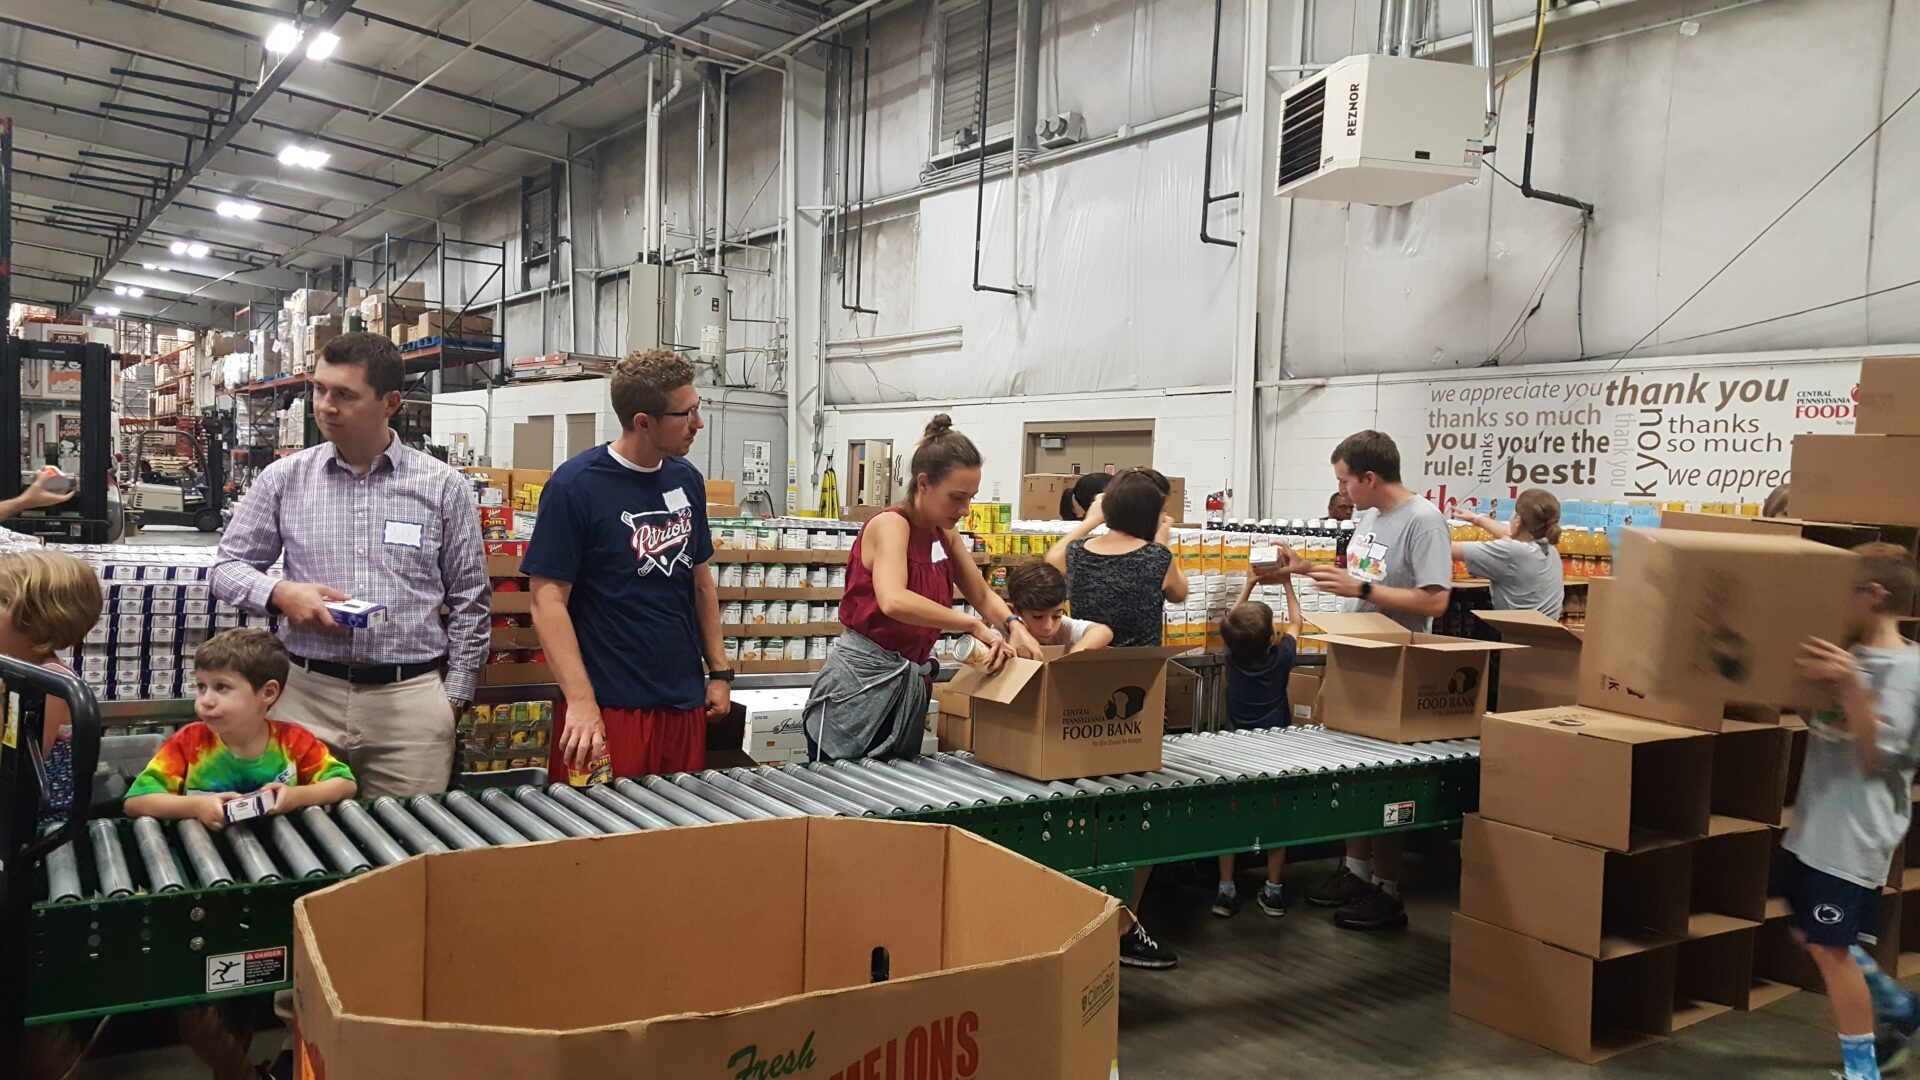 AP poll: 1 in 5 Americans experience food insecurity